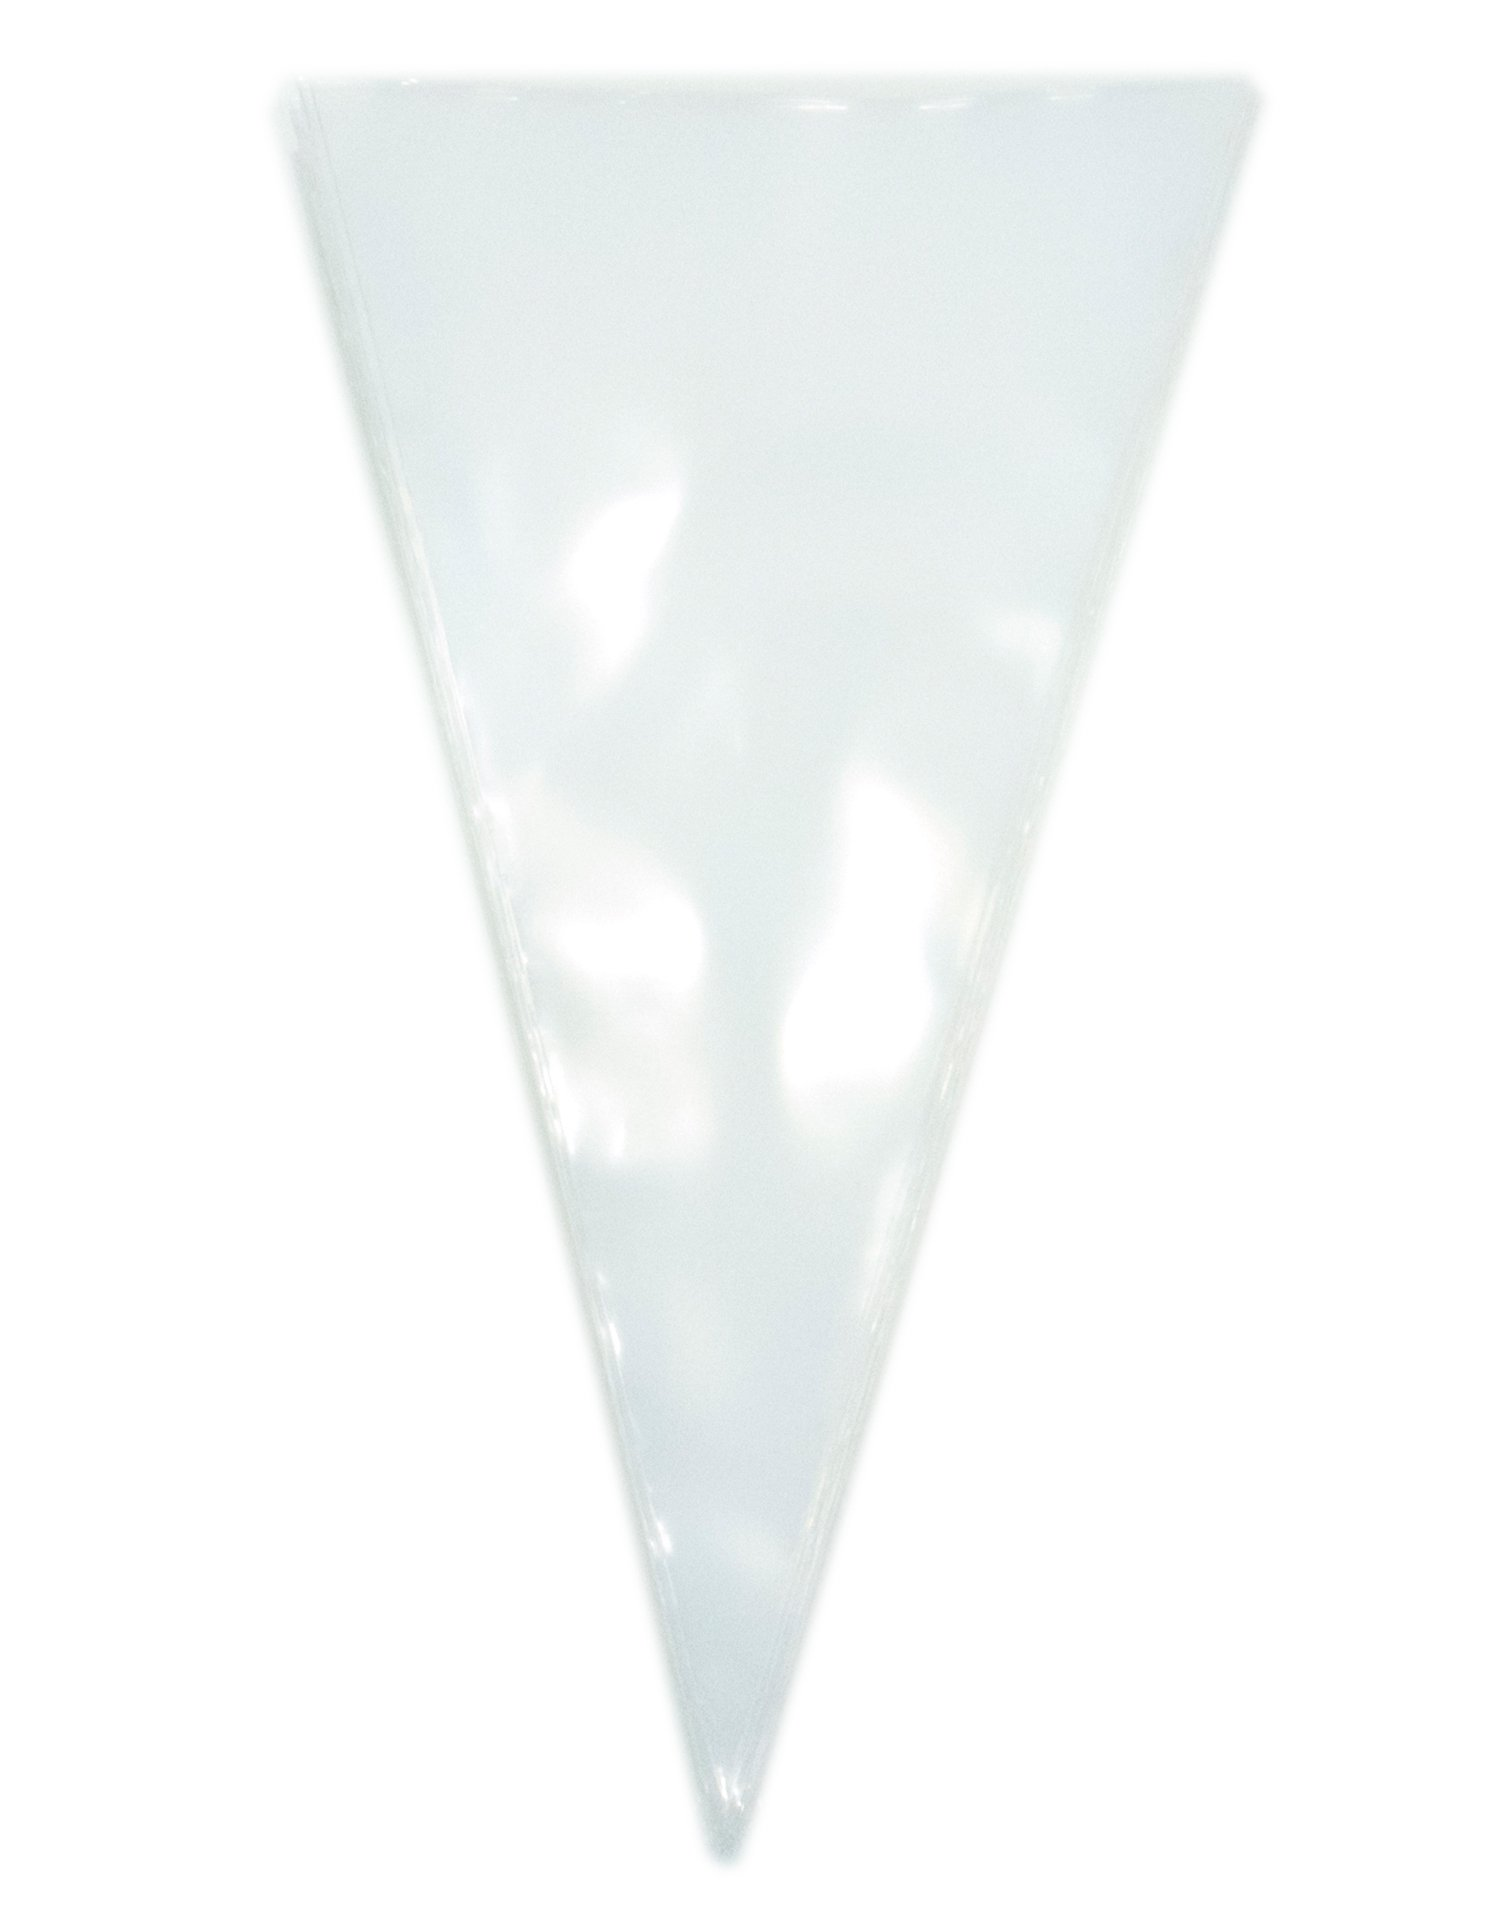 Pastry Bag [Extra Thick - Strong Sturdy] Pridebit Disposable Decorating Bags 50 Pack 12-Inch Piping Icing Bags